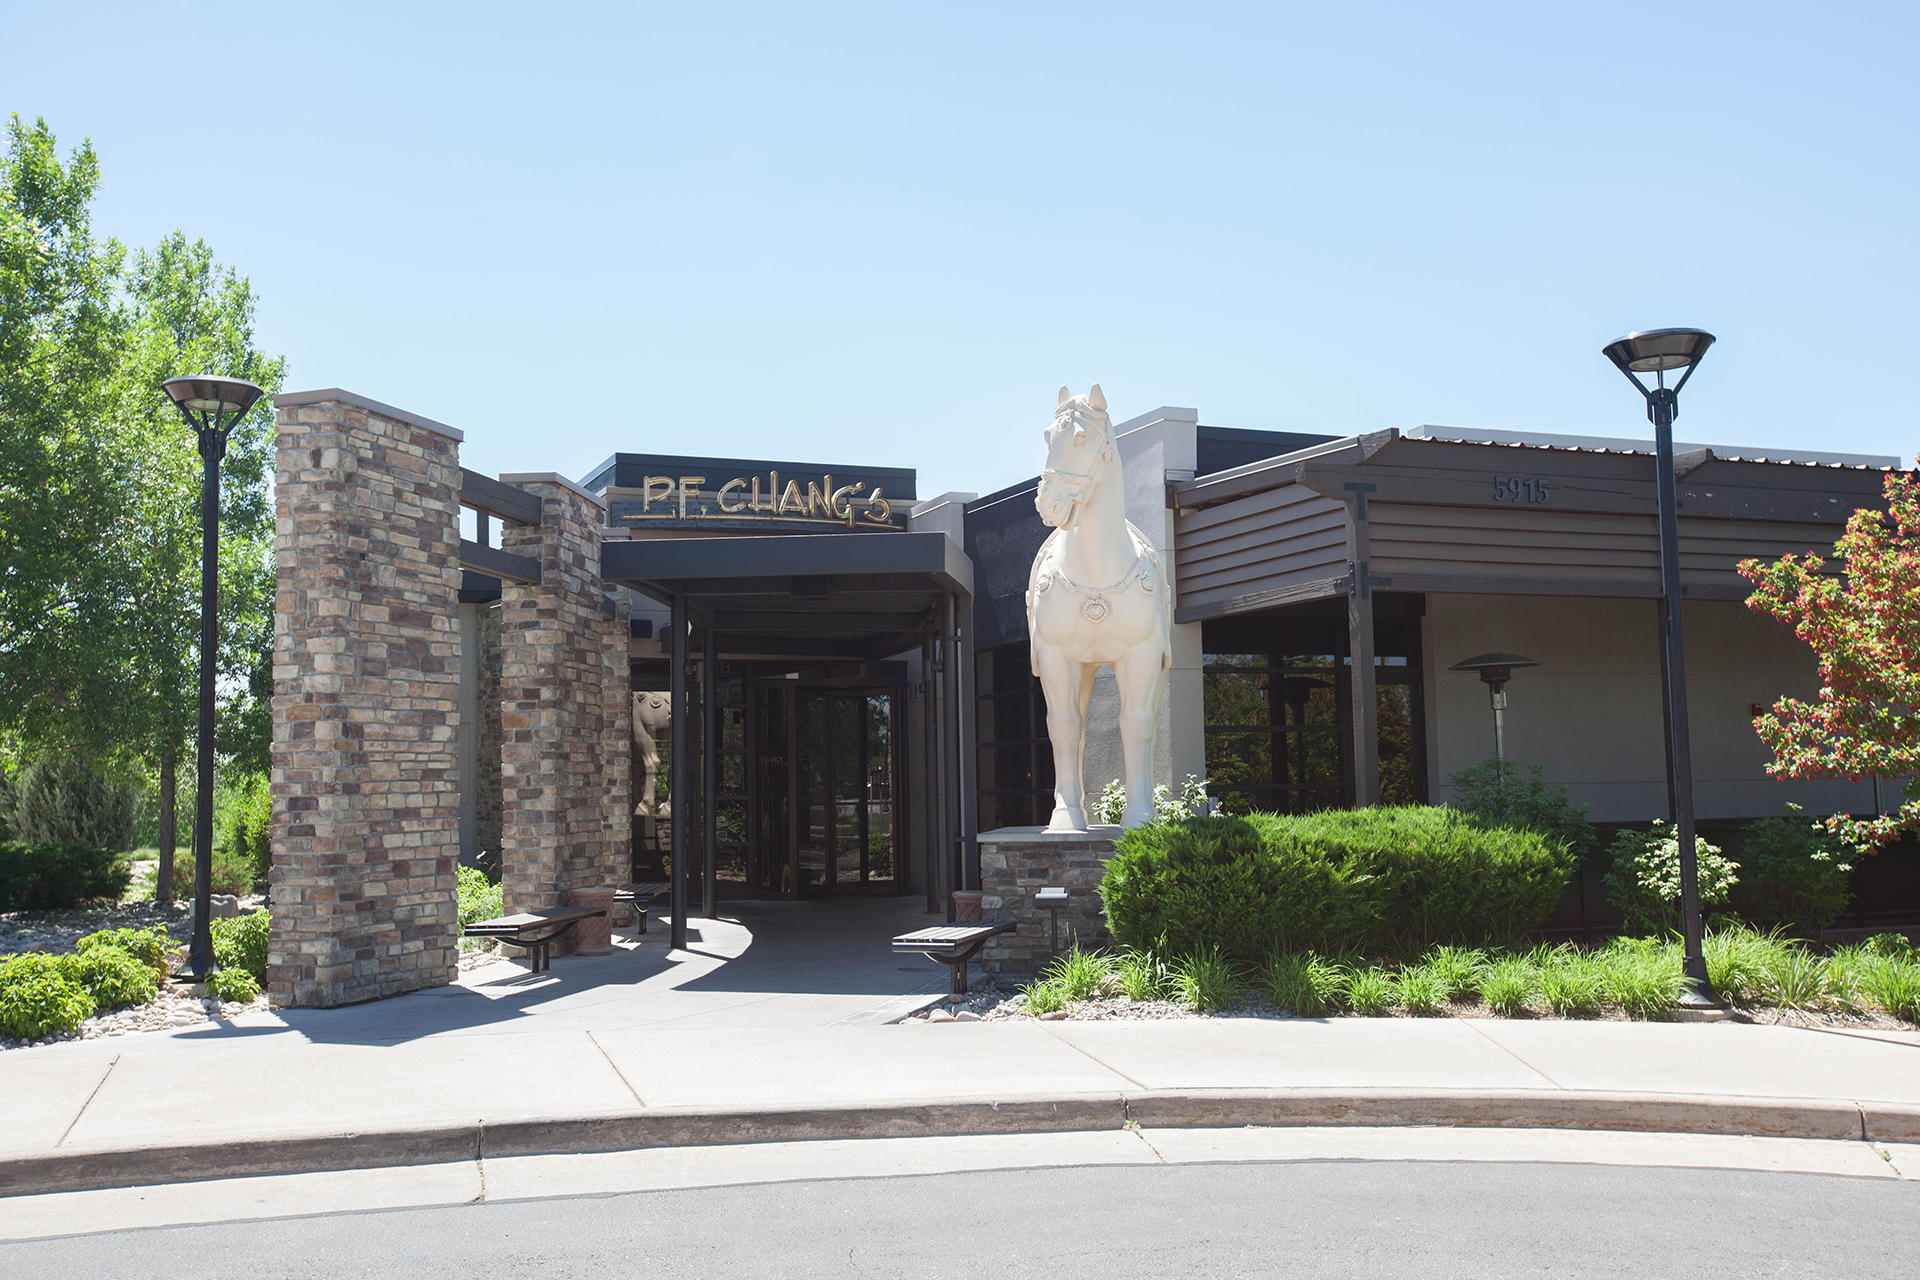 P F Chang S In 5915 Sky Pond Dr Loveland Co Asian American Sushi Catering